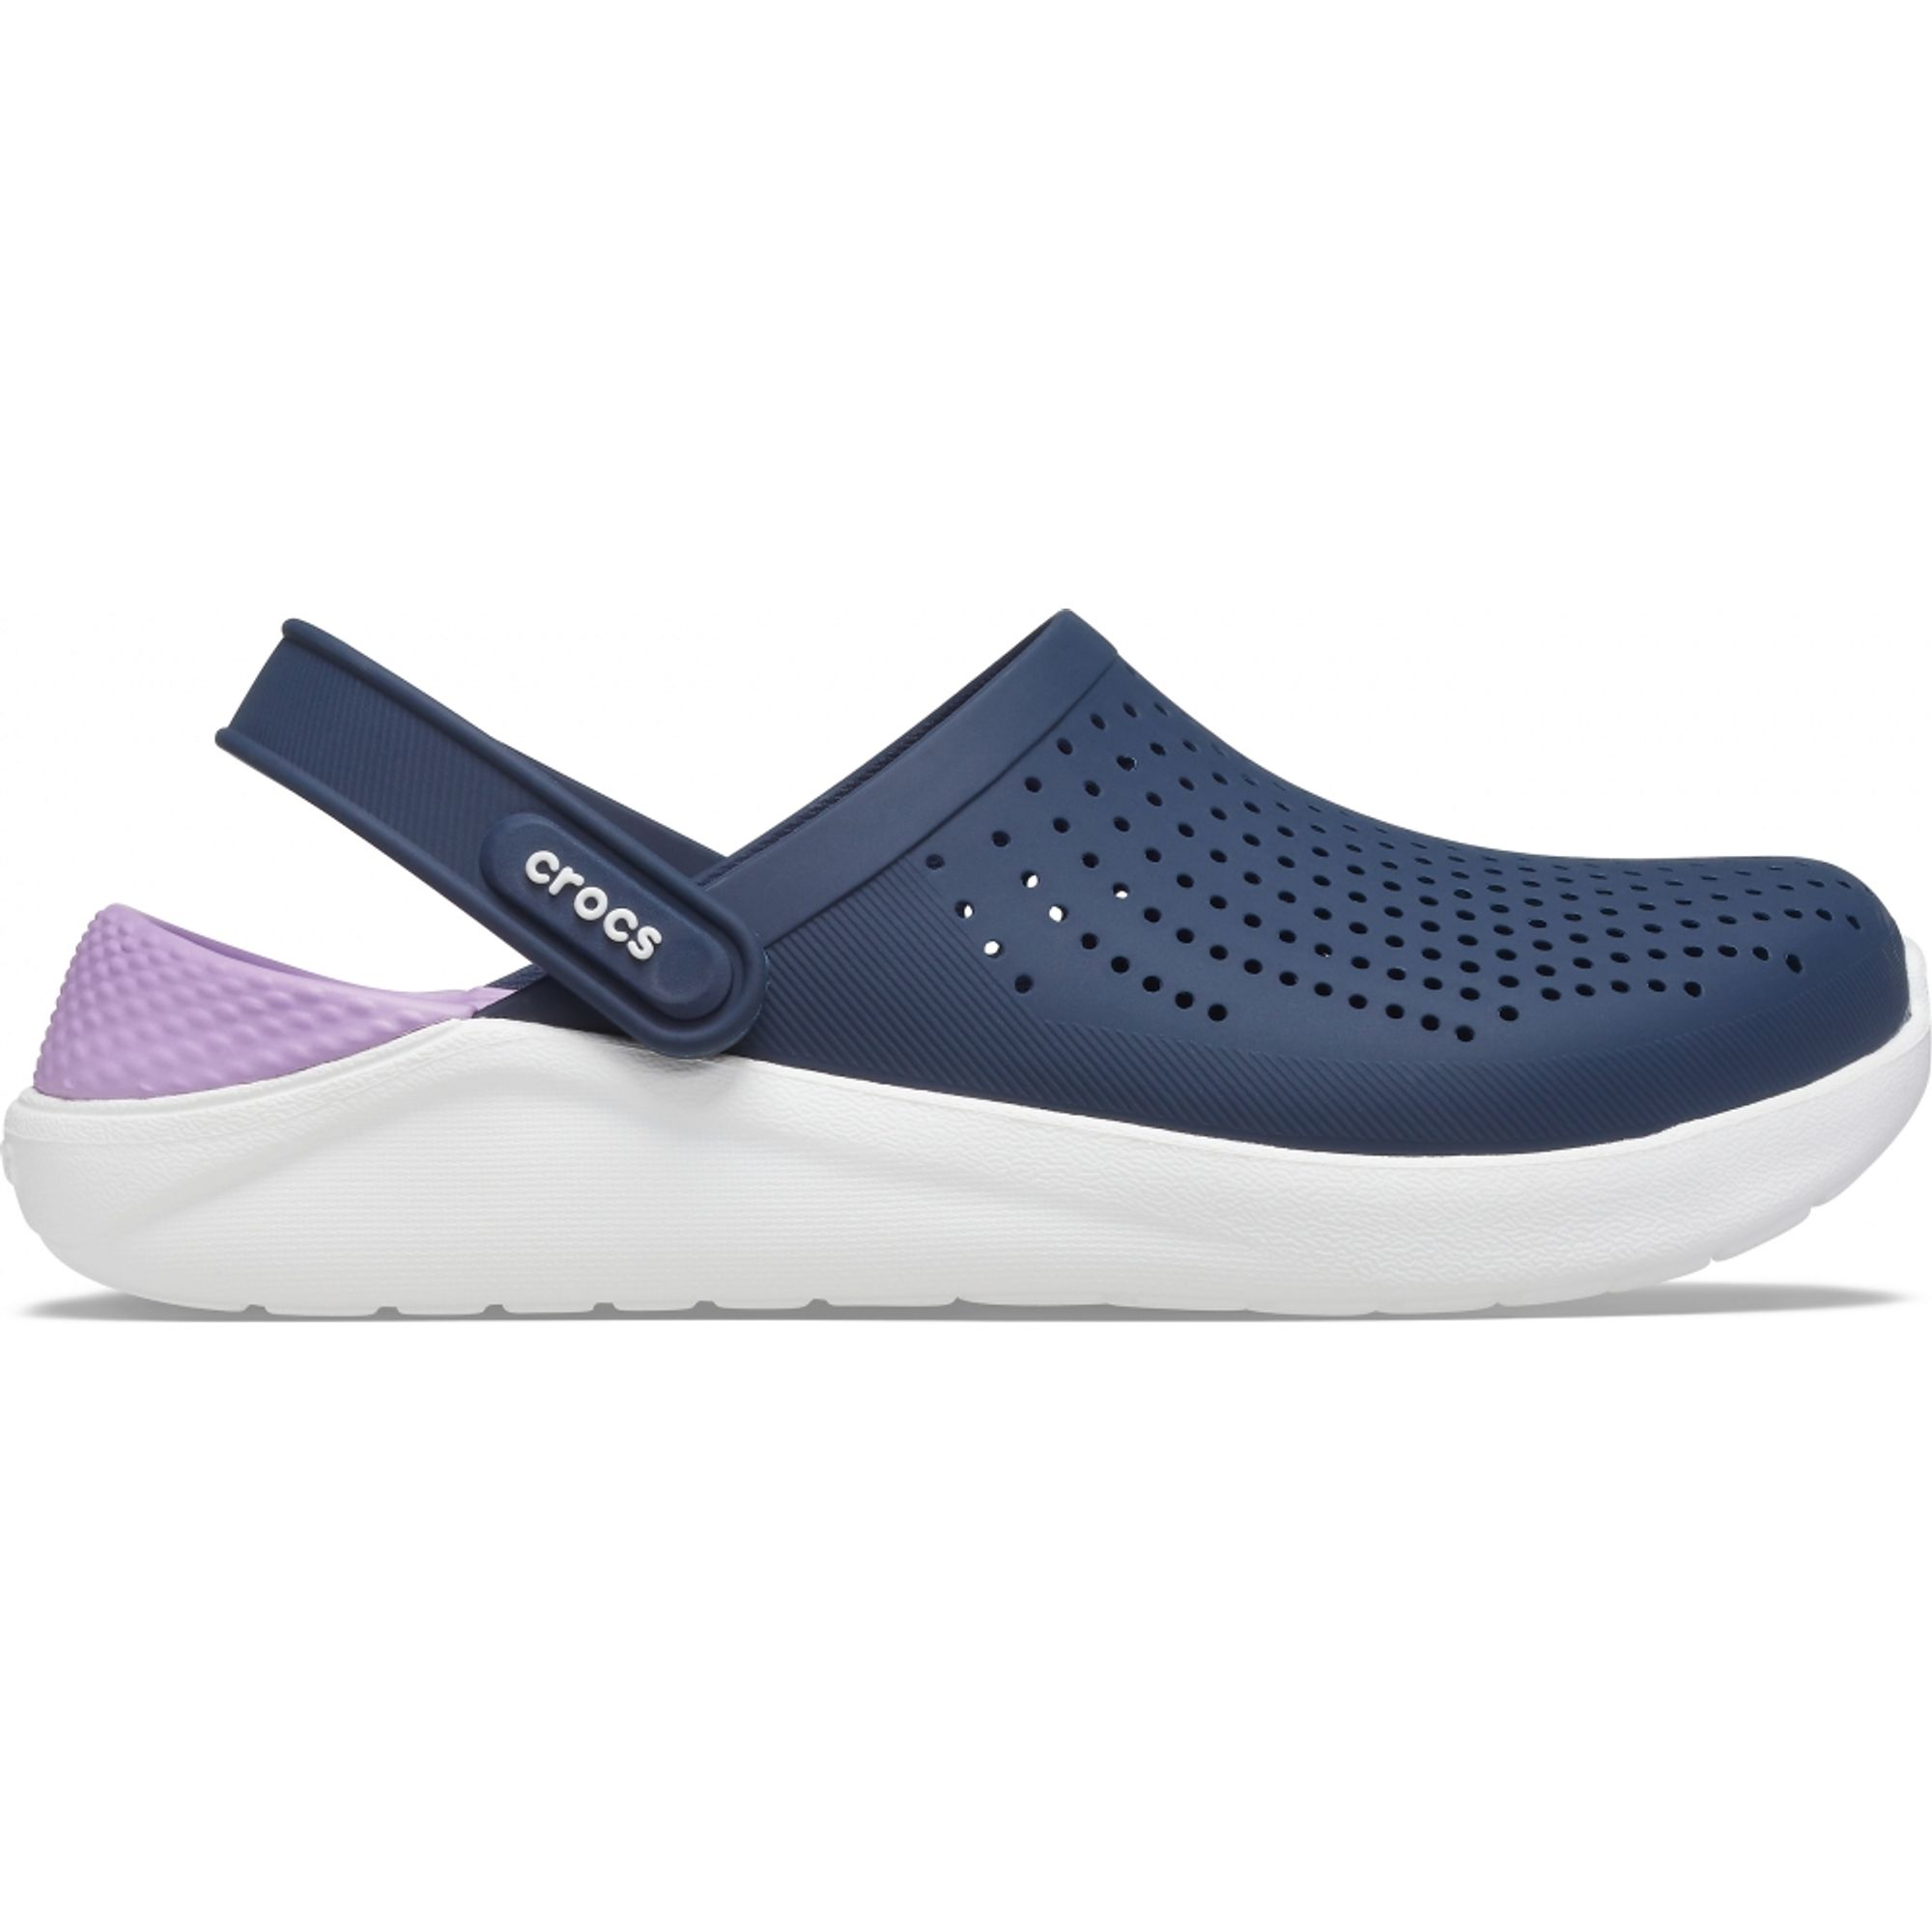 LiteRide™-Clog-color-Navy---Orchid-color-Navy---Orchid-talla-M4-W6